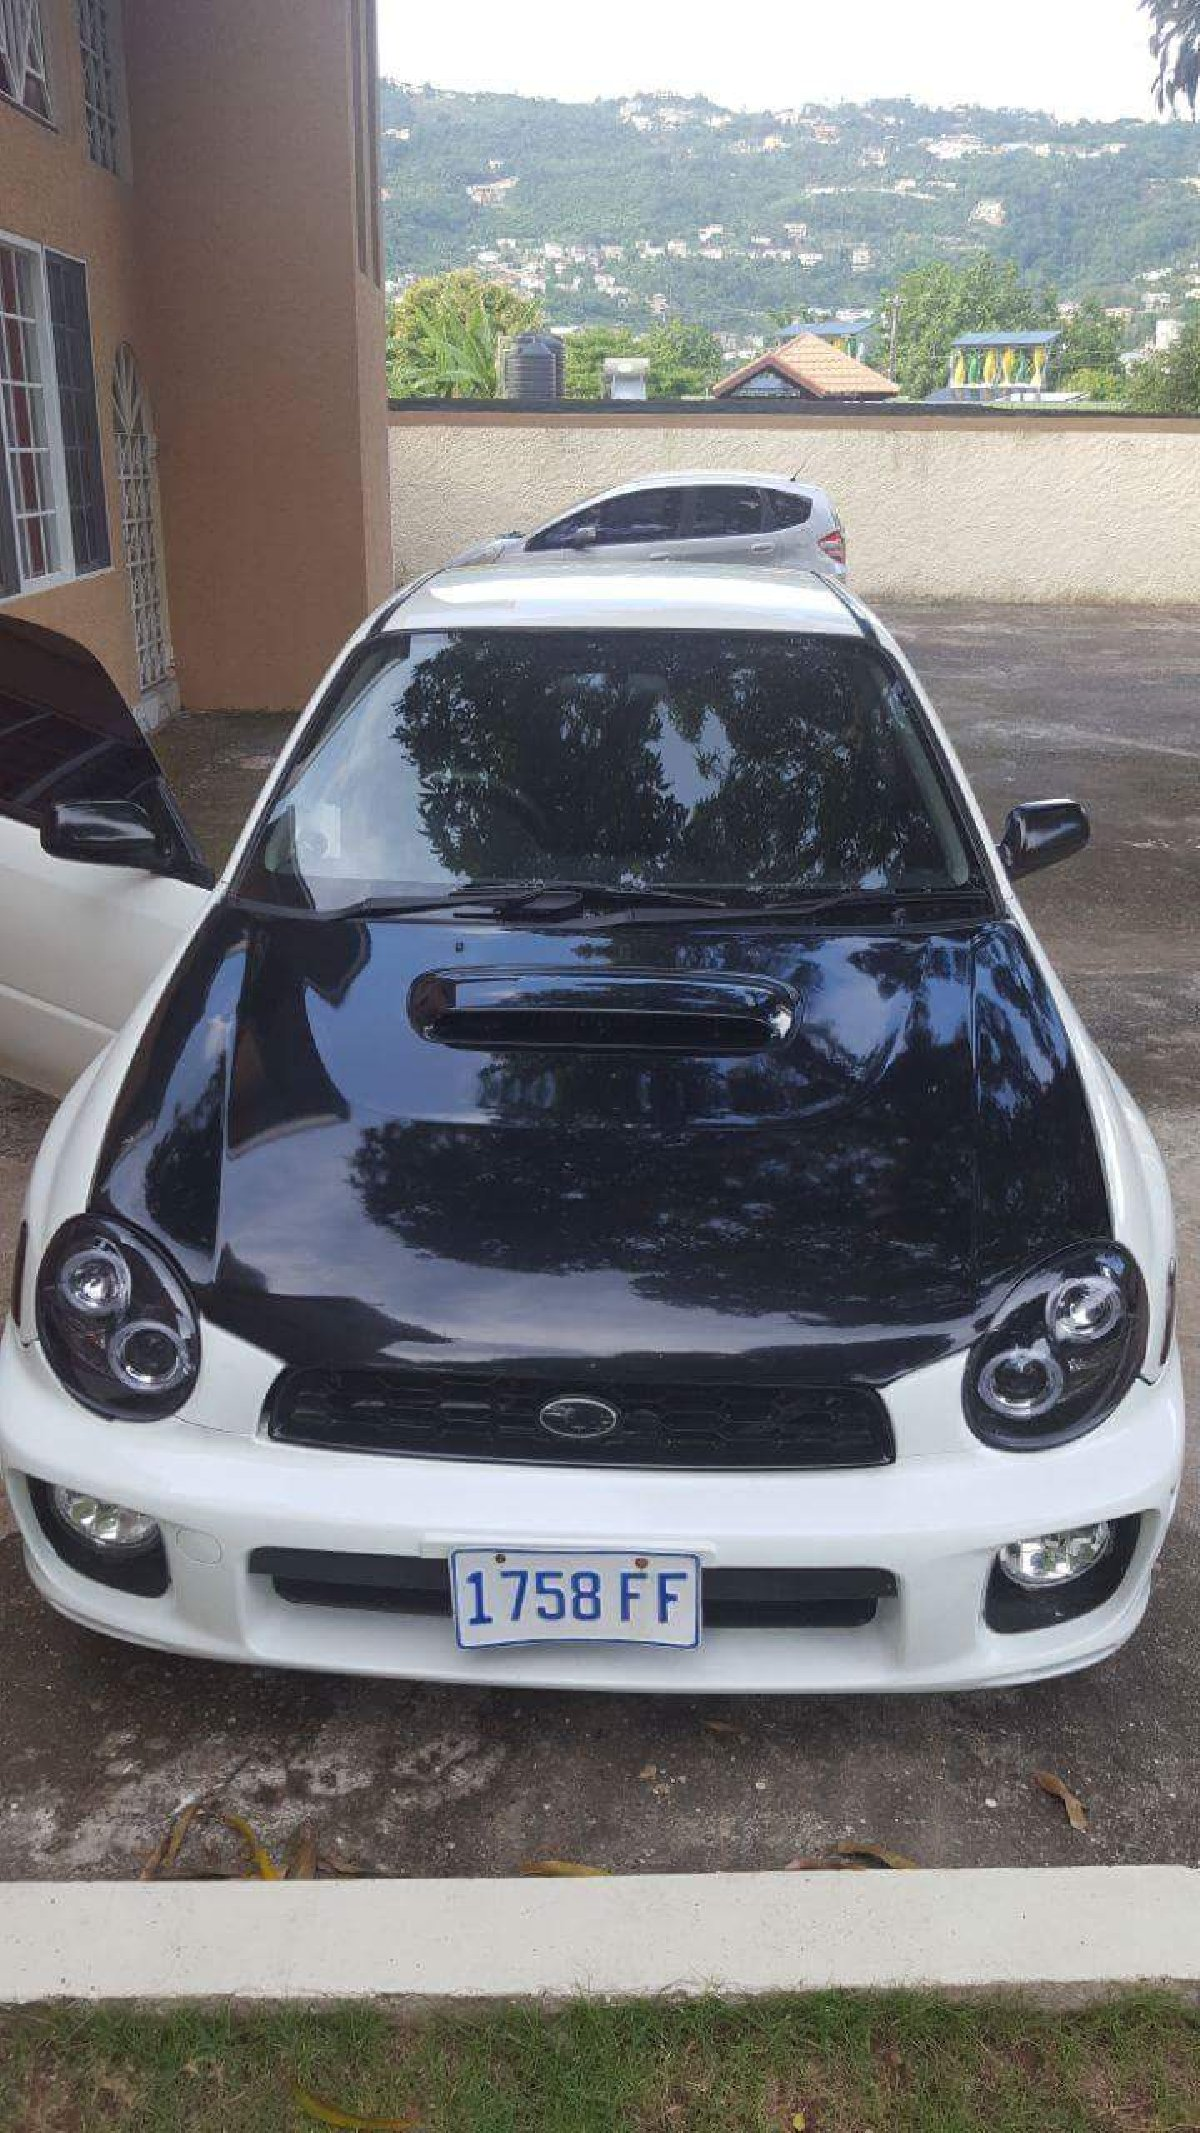 subaru wrx turbo automatic for sale call 5127758 in hagley park plaza kingston st andrew cars. Black Bedroom Furniture Sets. Home Design Ideas